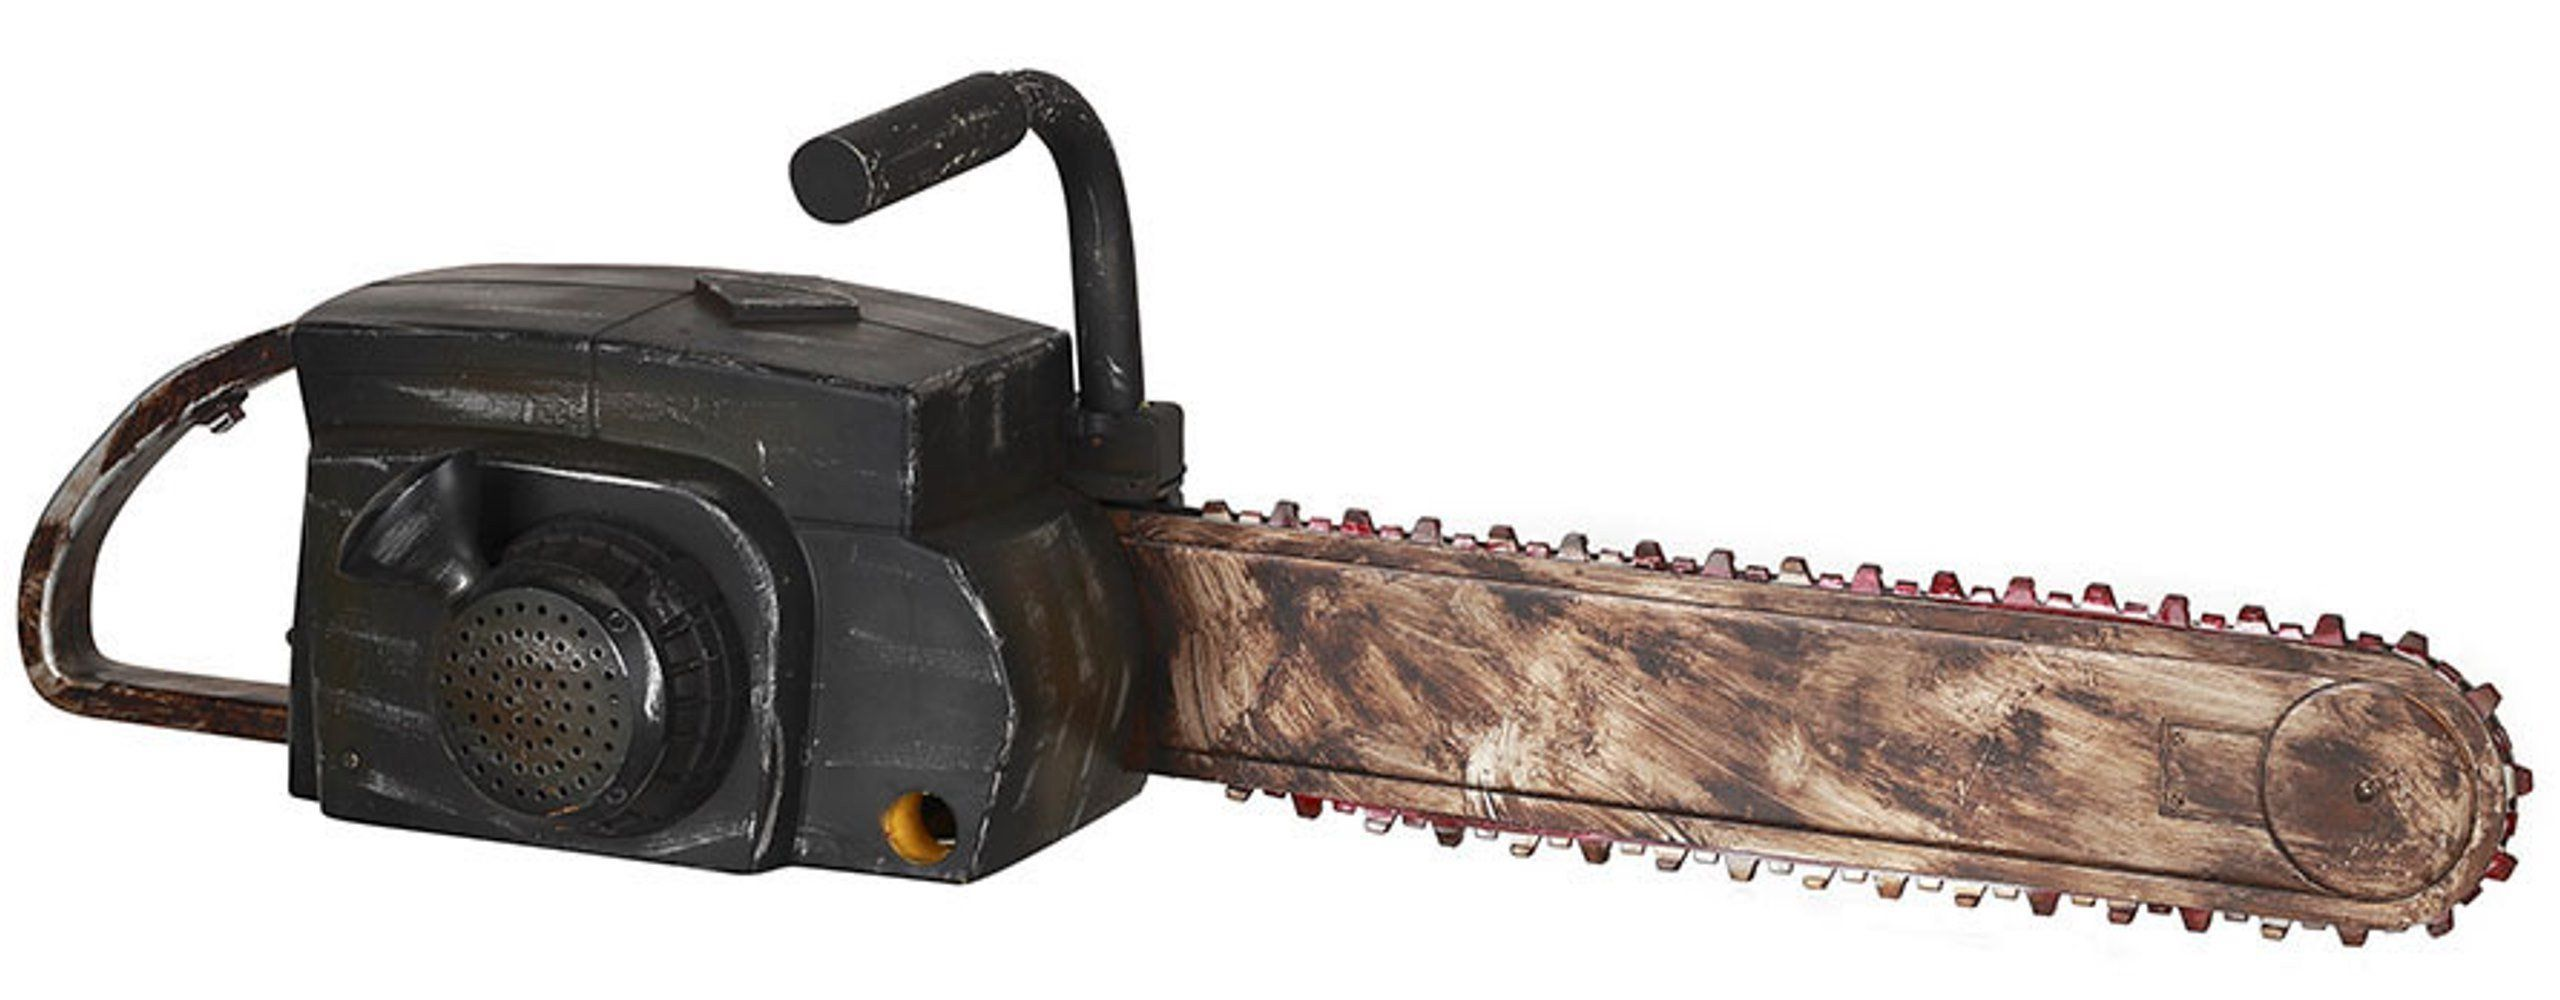 Animated Chainsaw With Rusty Finish Halloween Prop Halloween Props Chainsaw Halloween